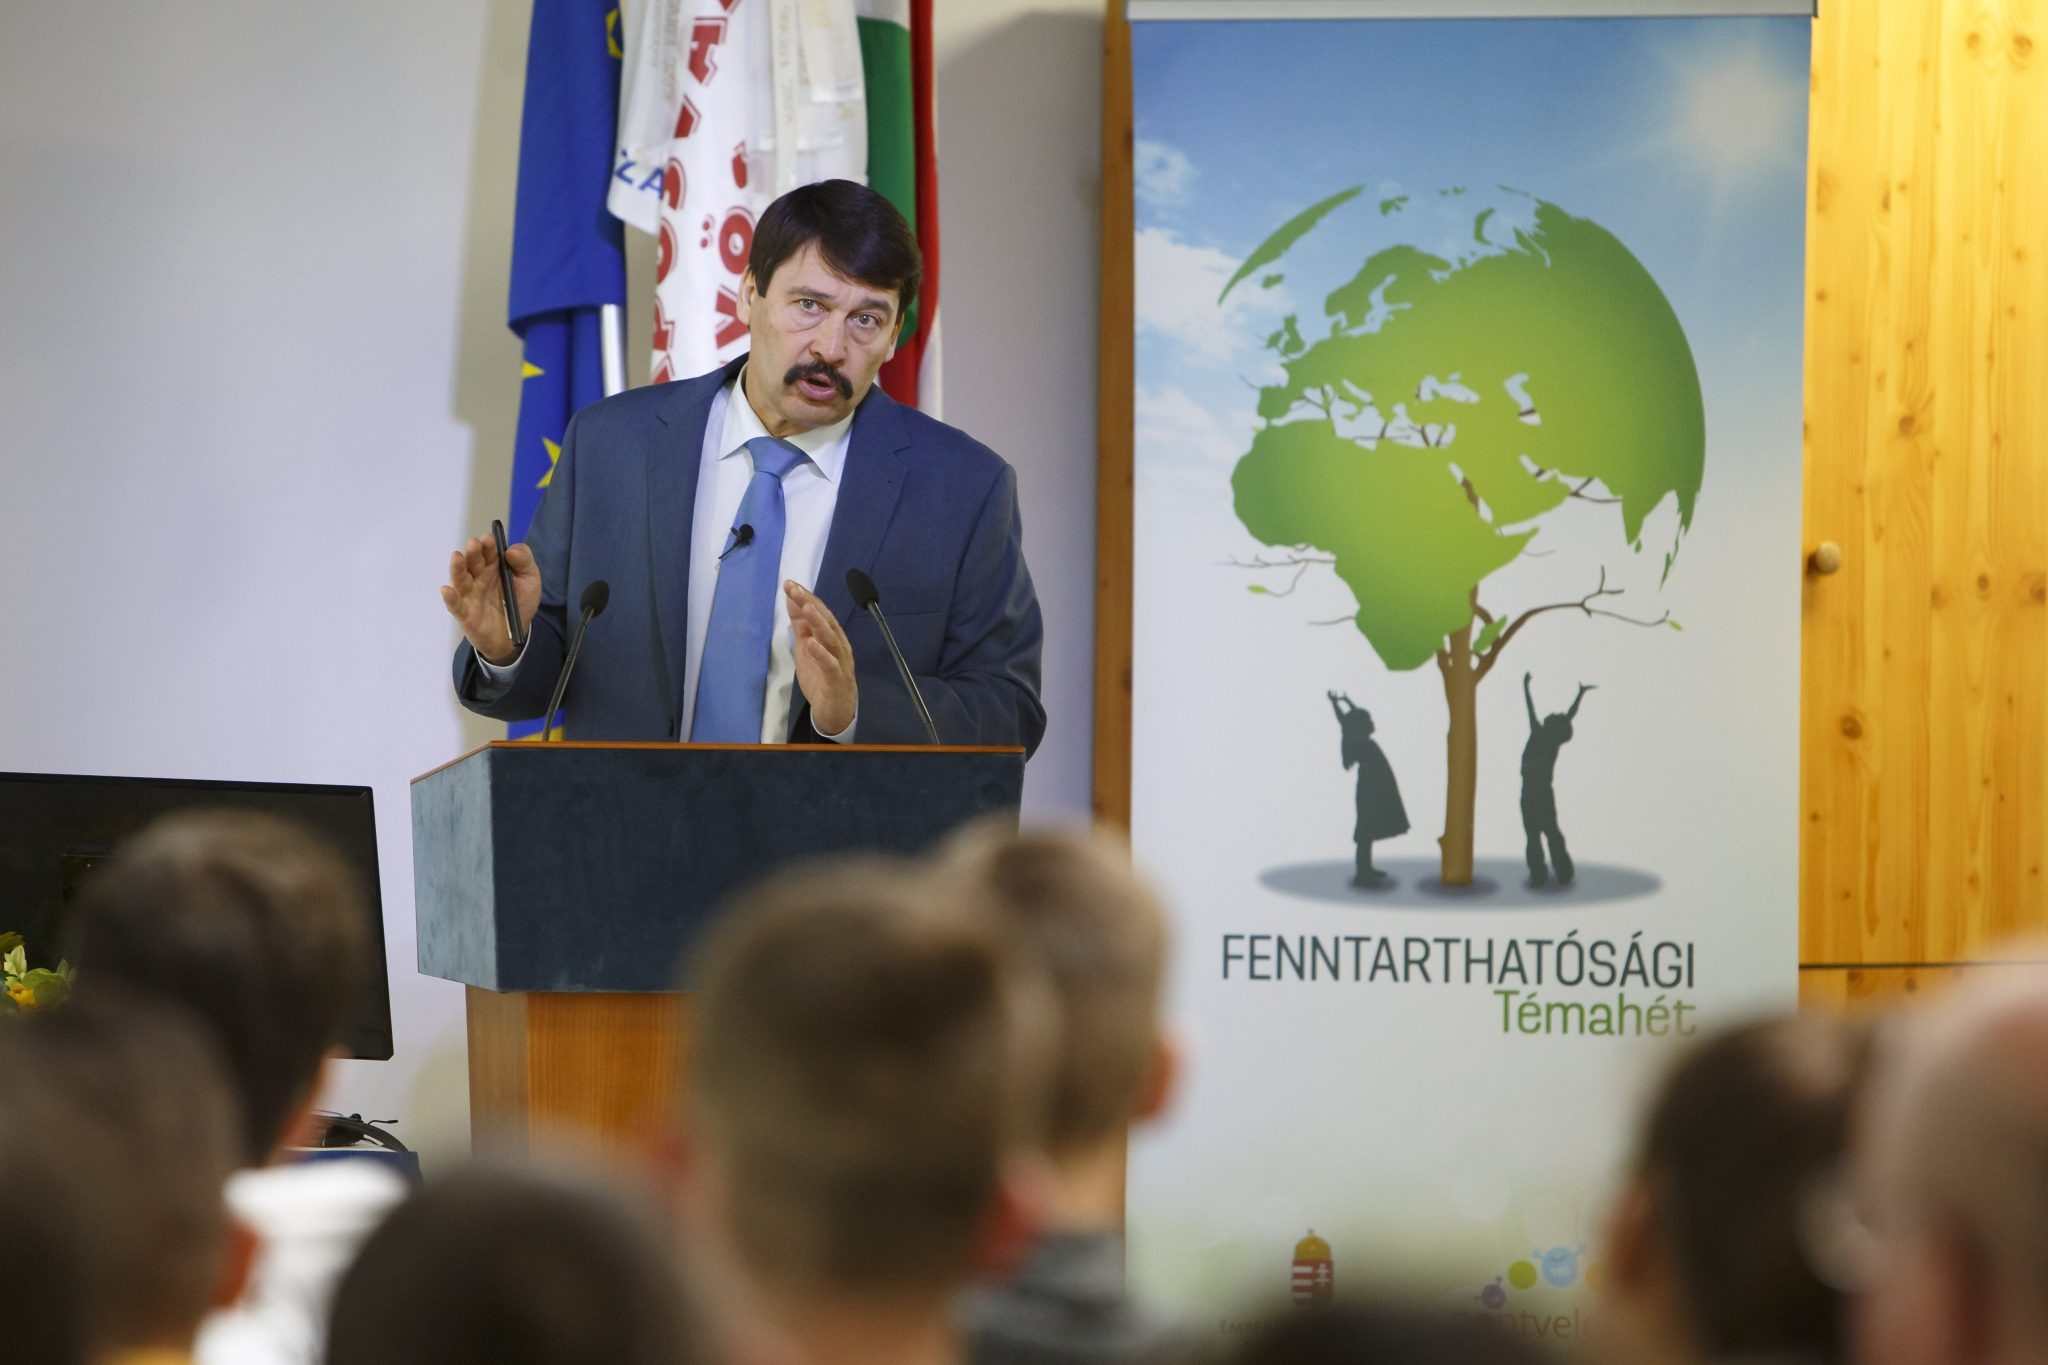 President Áder: 'Further Delays Could Make Climate Situation Much Worse in 5-10 Years' post's picture